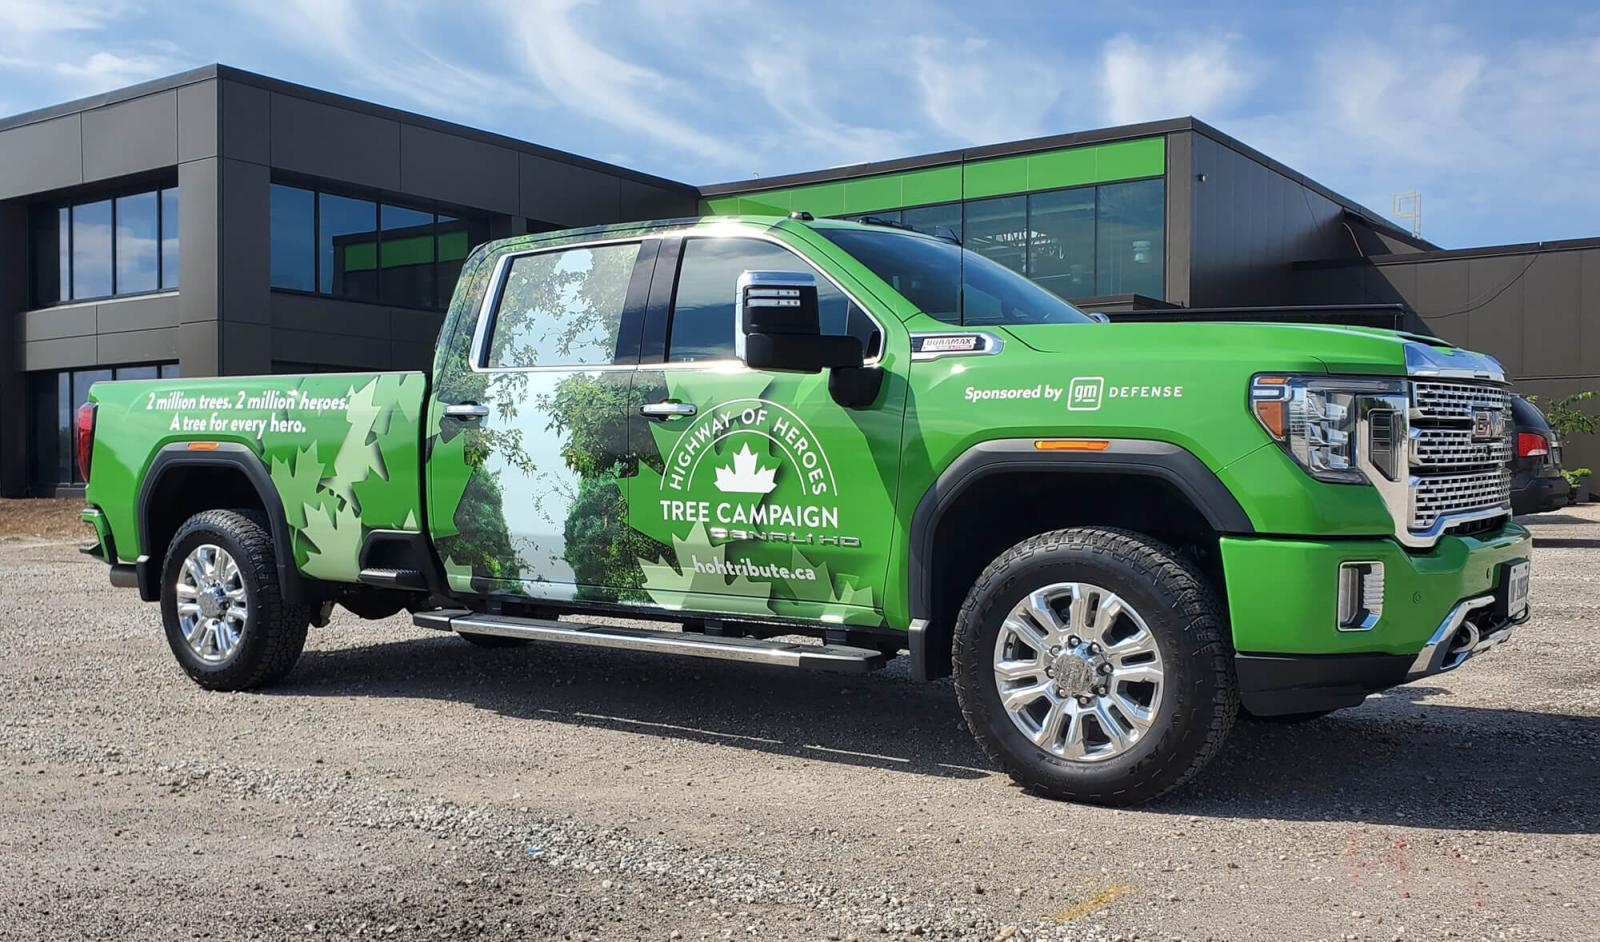 GMC provides new vehicle for tree planting campaign